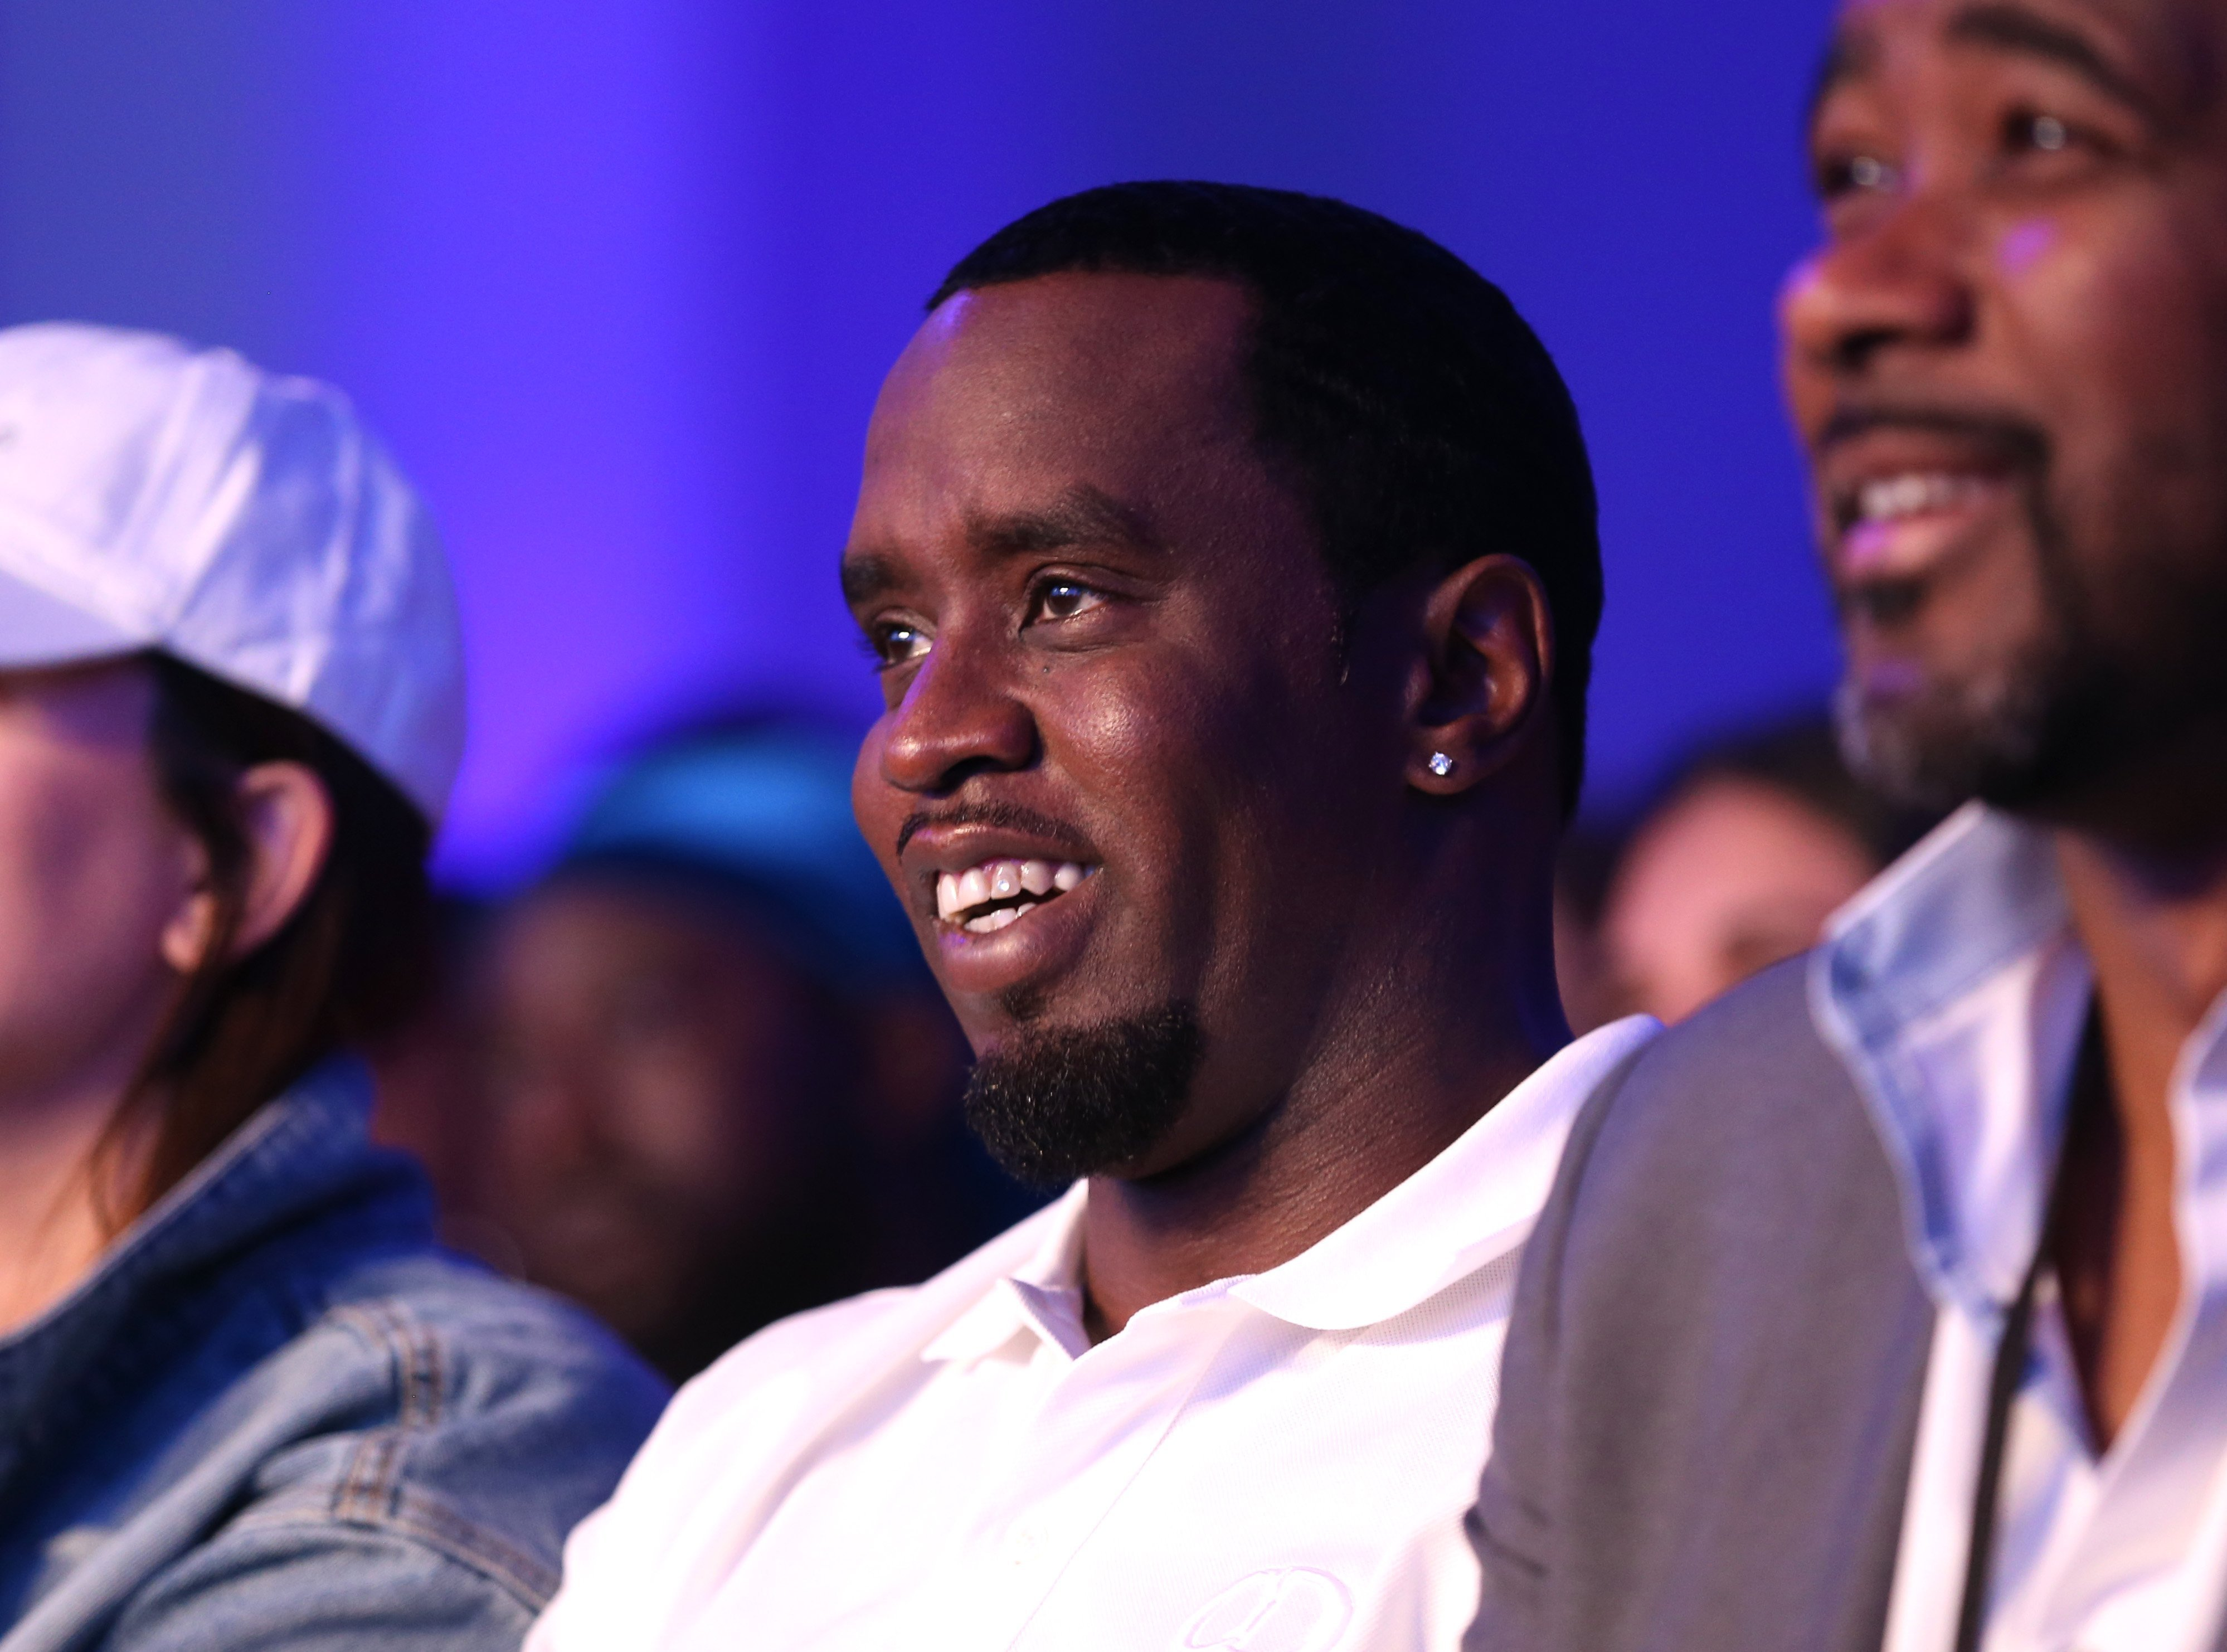 Diddy attending the Revolt X AT&T 3-Day Summit in October 2019. | Photo: Getty Images